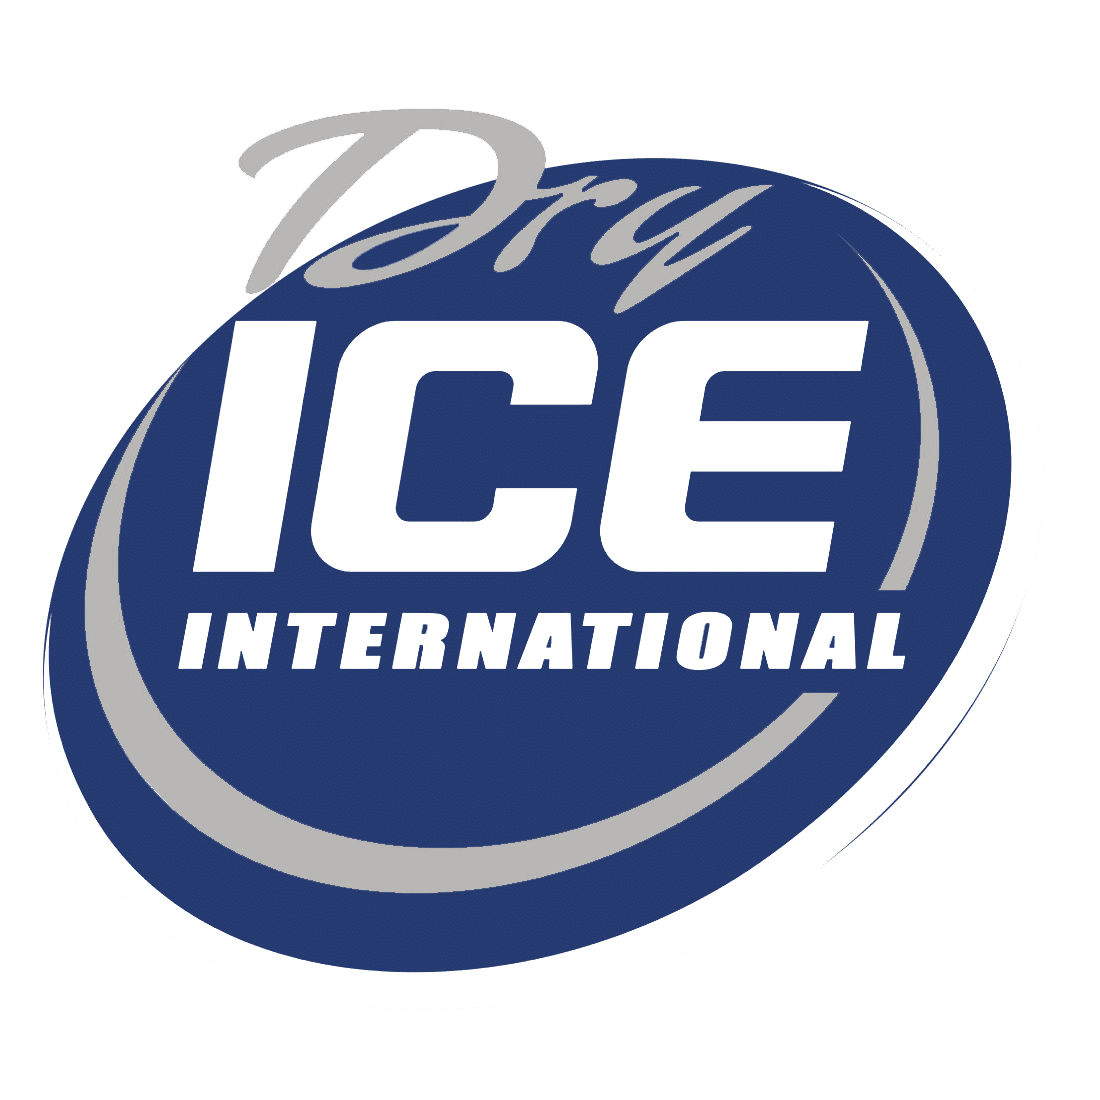 Dry Ice International